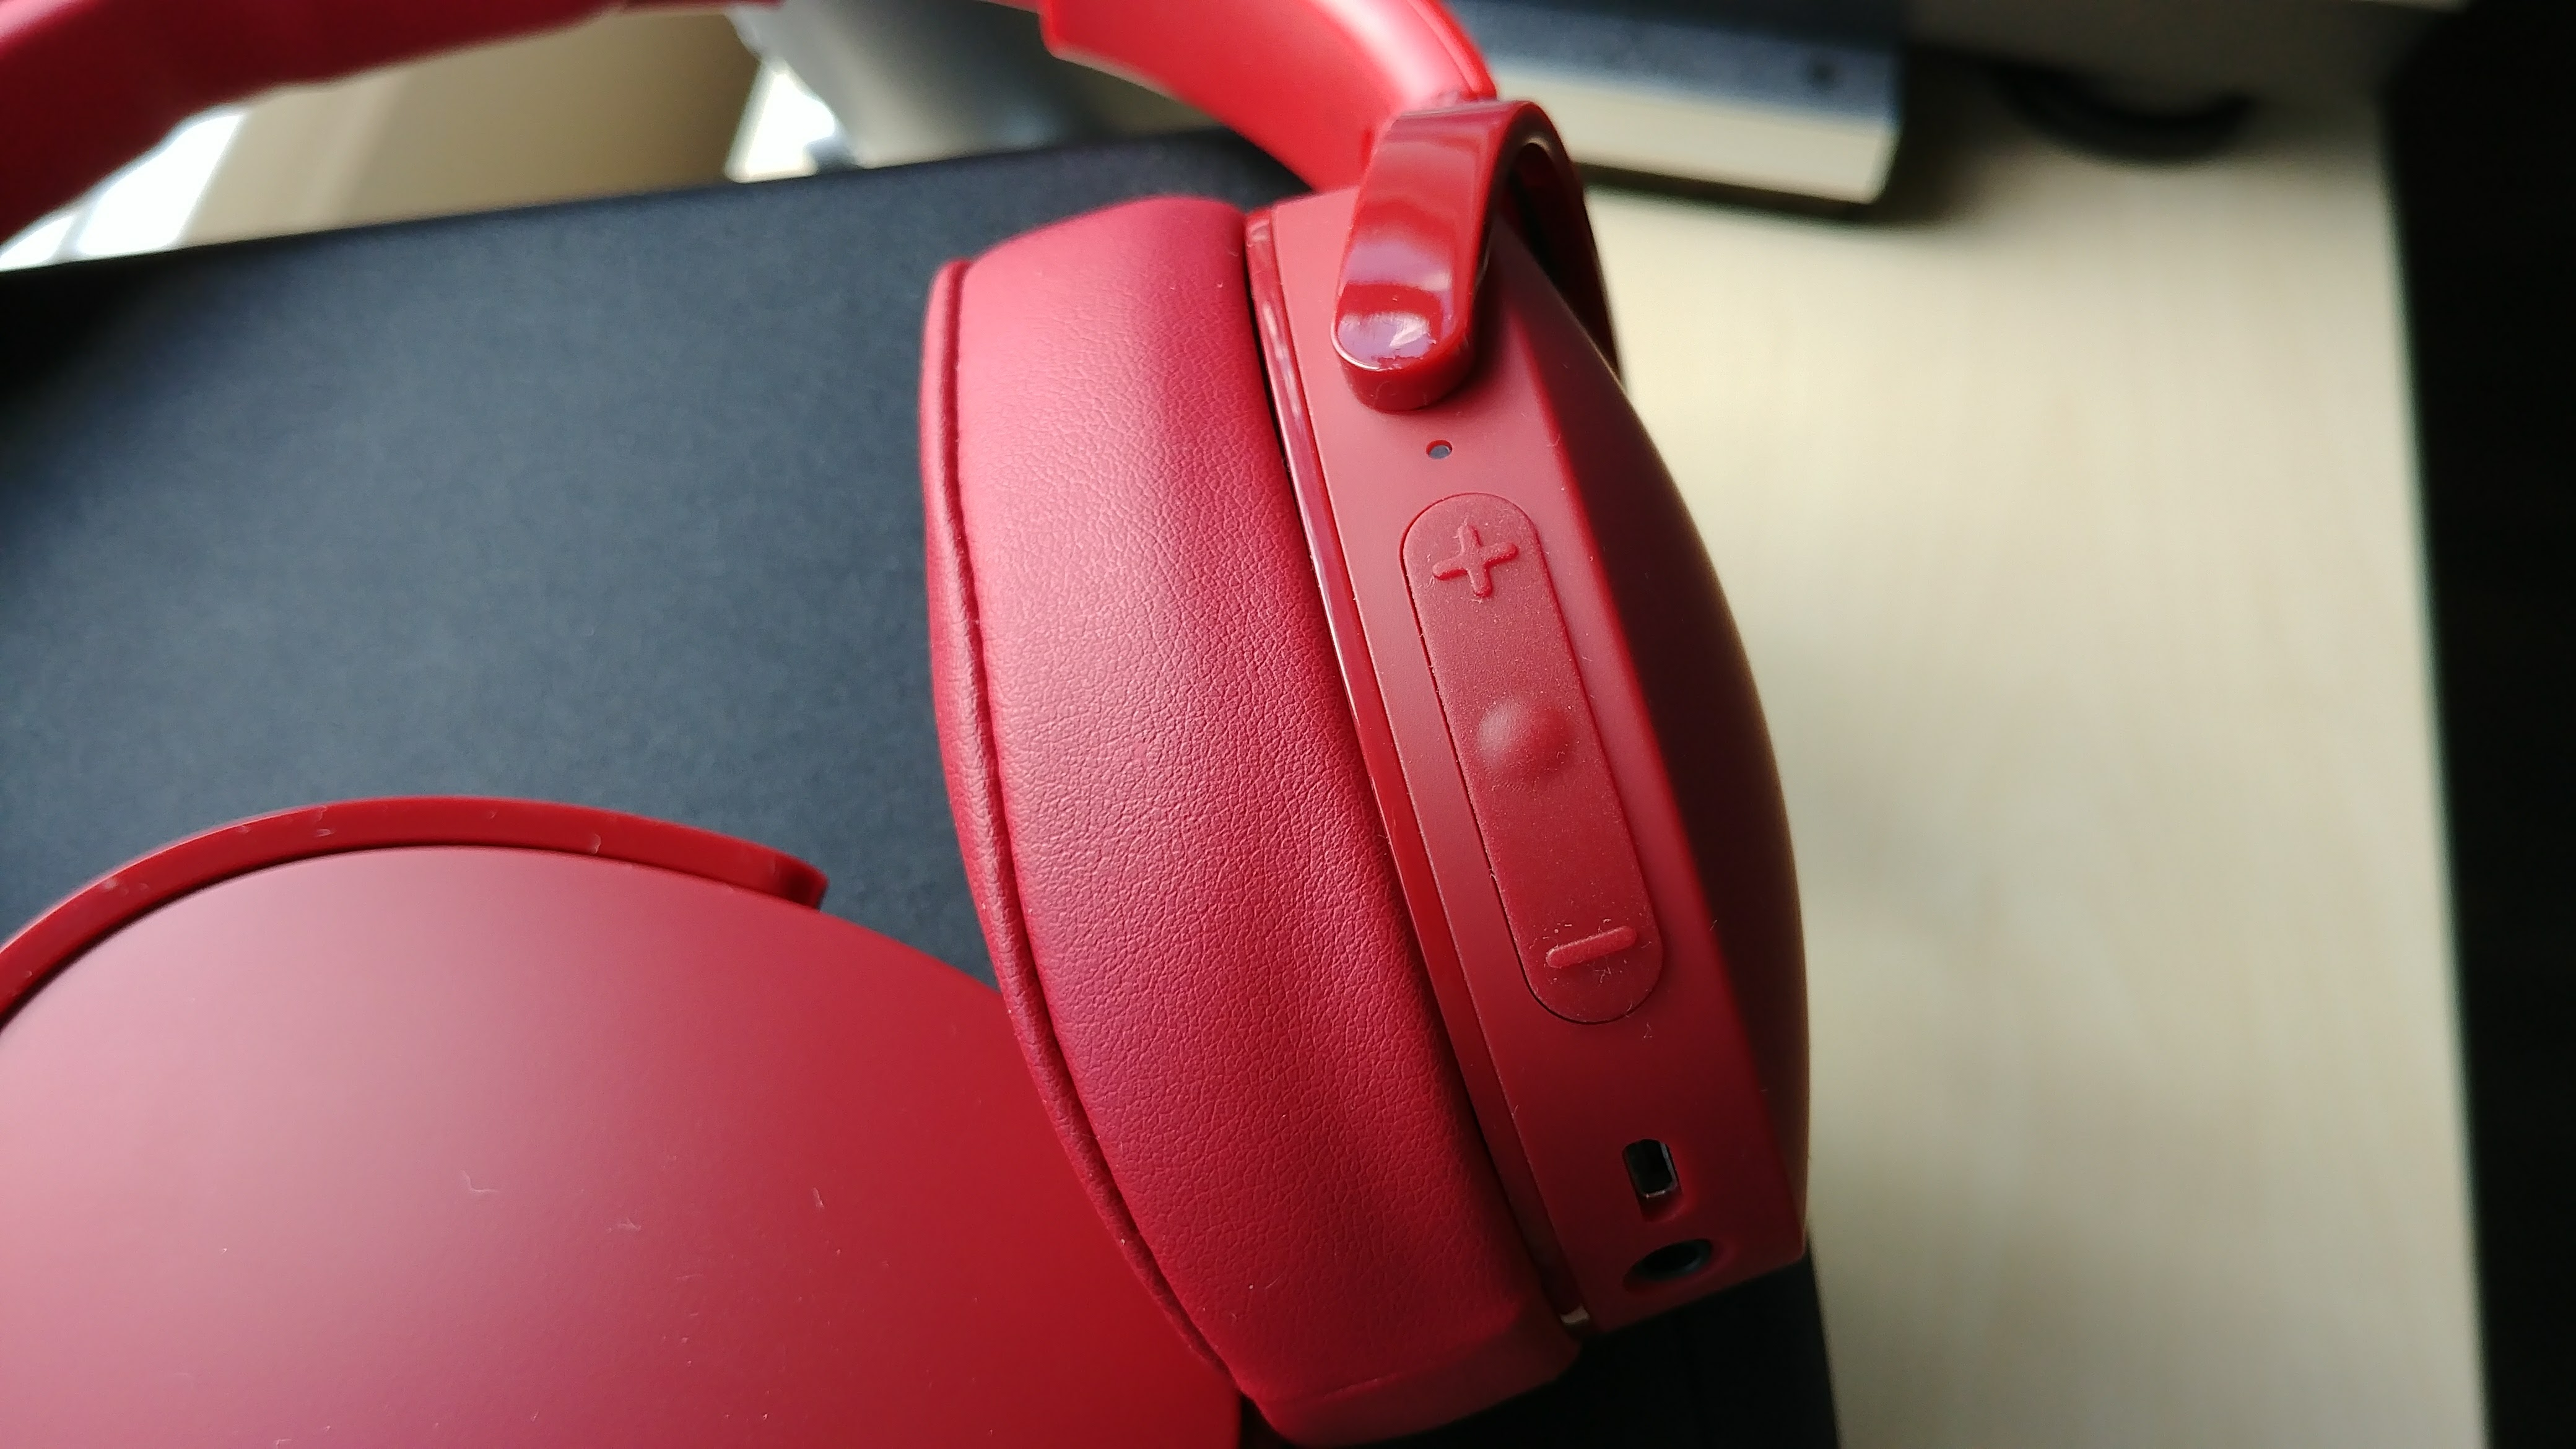 Skullcandy Hesh 3 Wireless Headphones Promolista Headphone Jack Wiring Diagram The Right Earcup Also Houses 35mm For Listening In Wired Mode If Battery Runs Out Speaking Of Batteries Charging Is Done Via A Microusb